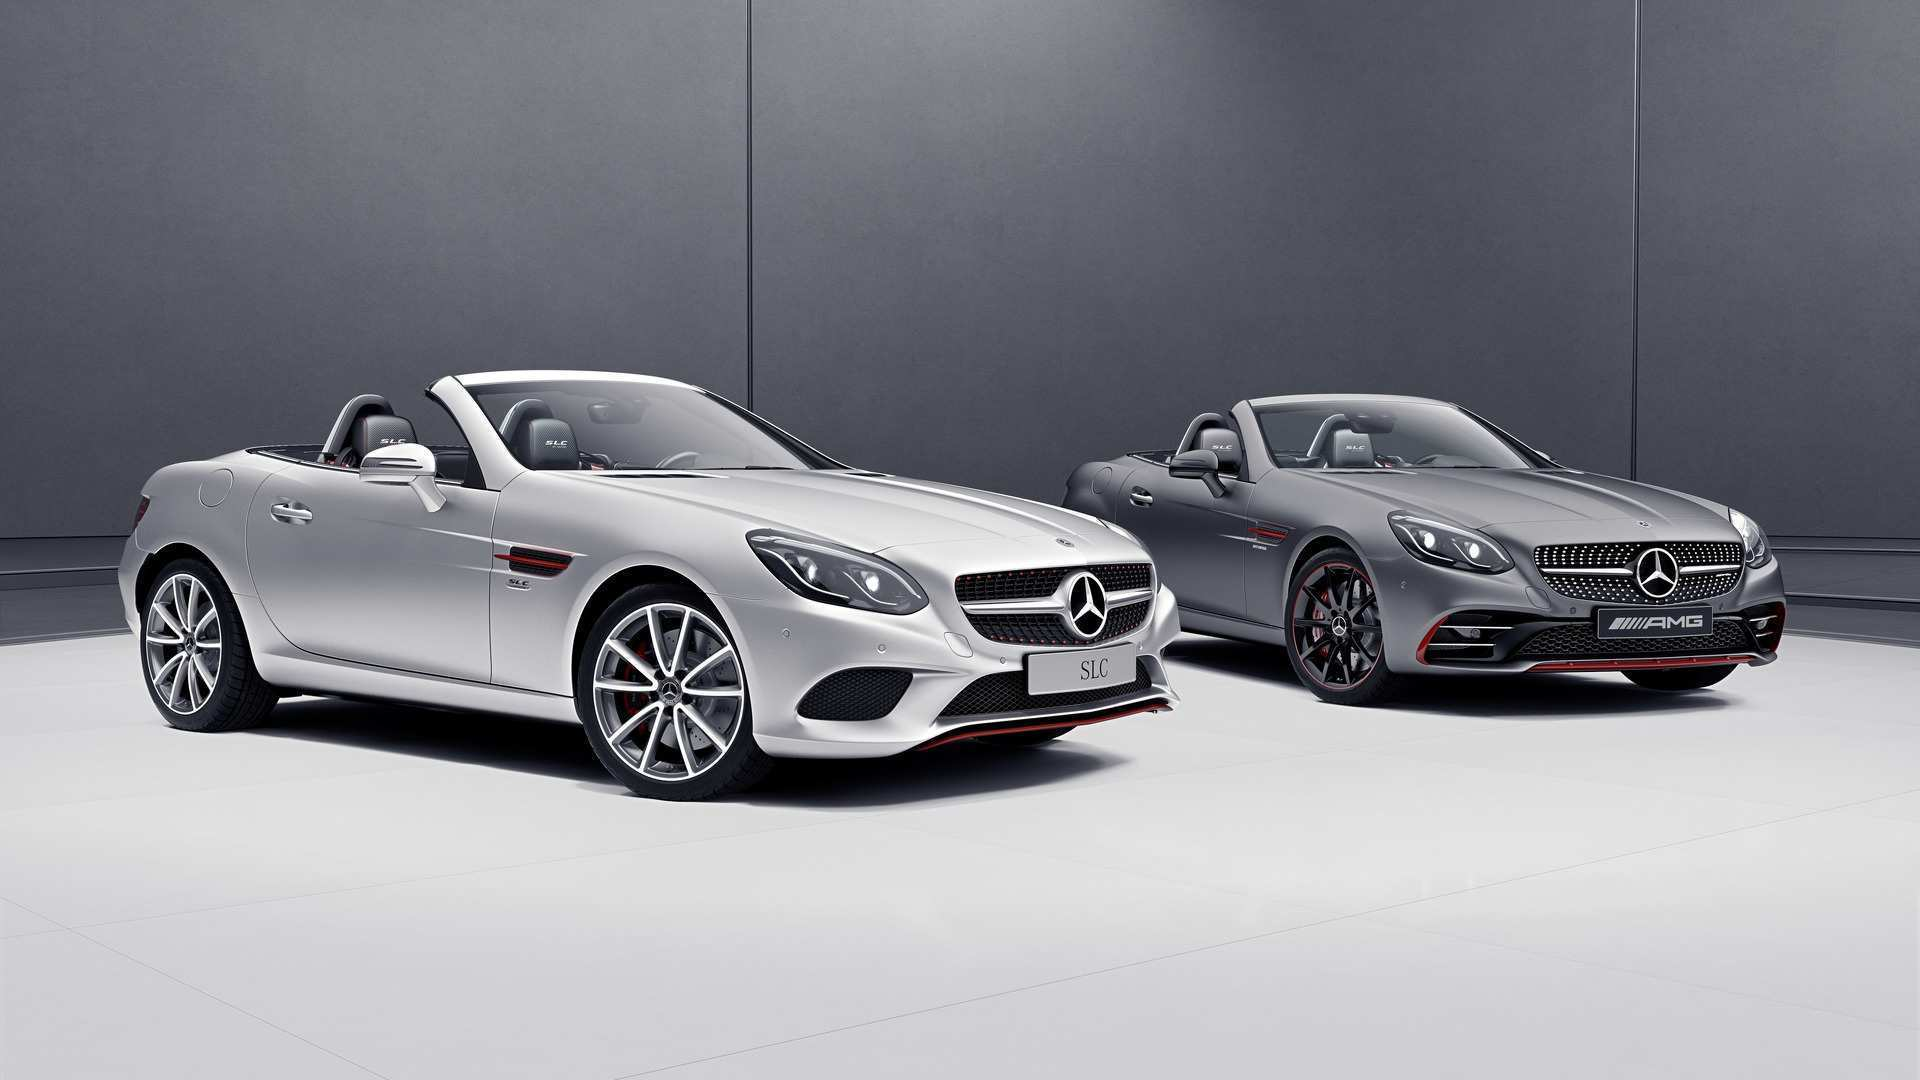 17 New Mercedes Slc 2020 Redesign and Concept for Mercedes Slc 2020